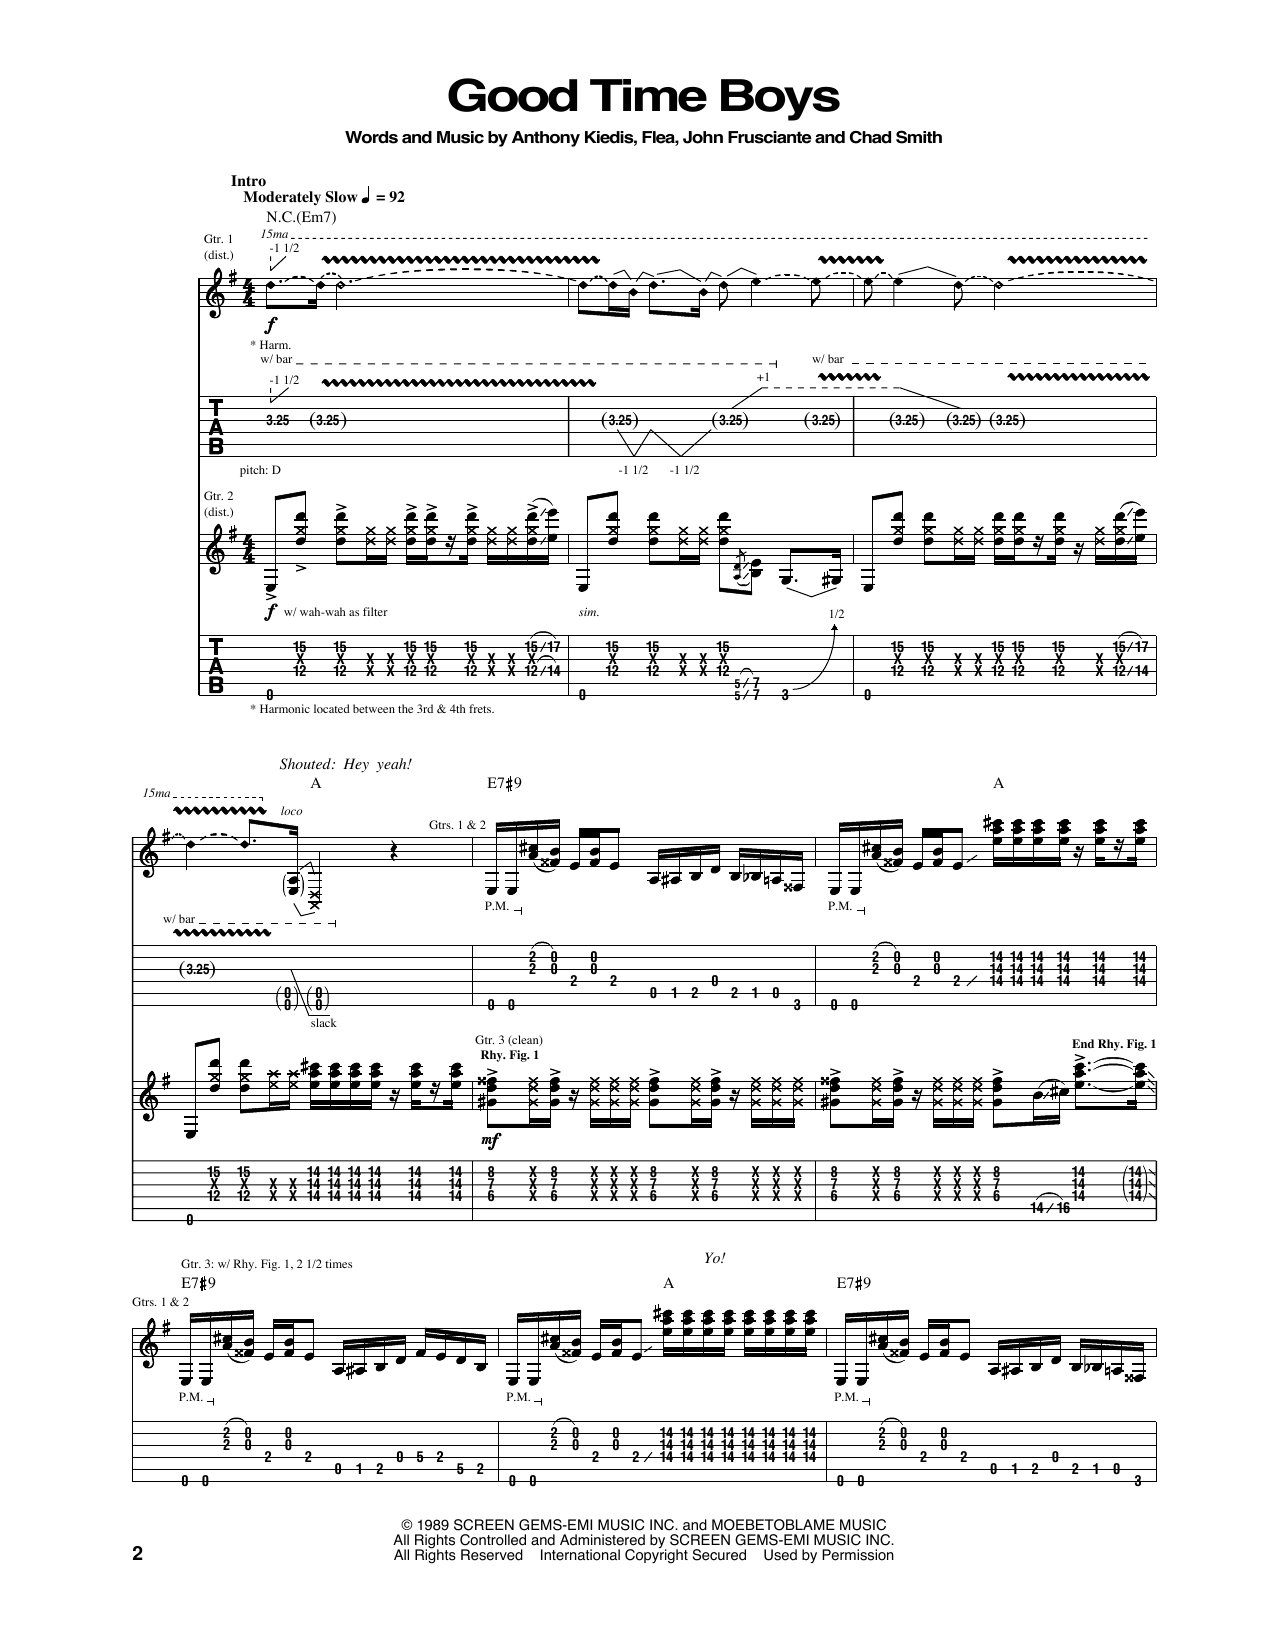 Good Time Boys Sheet Music